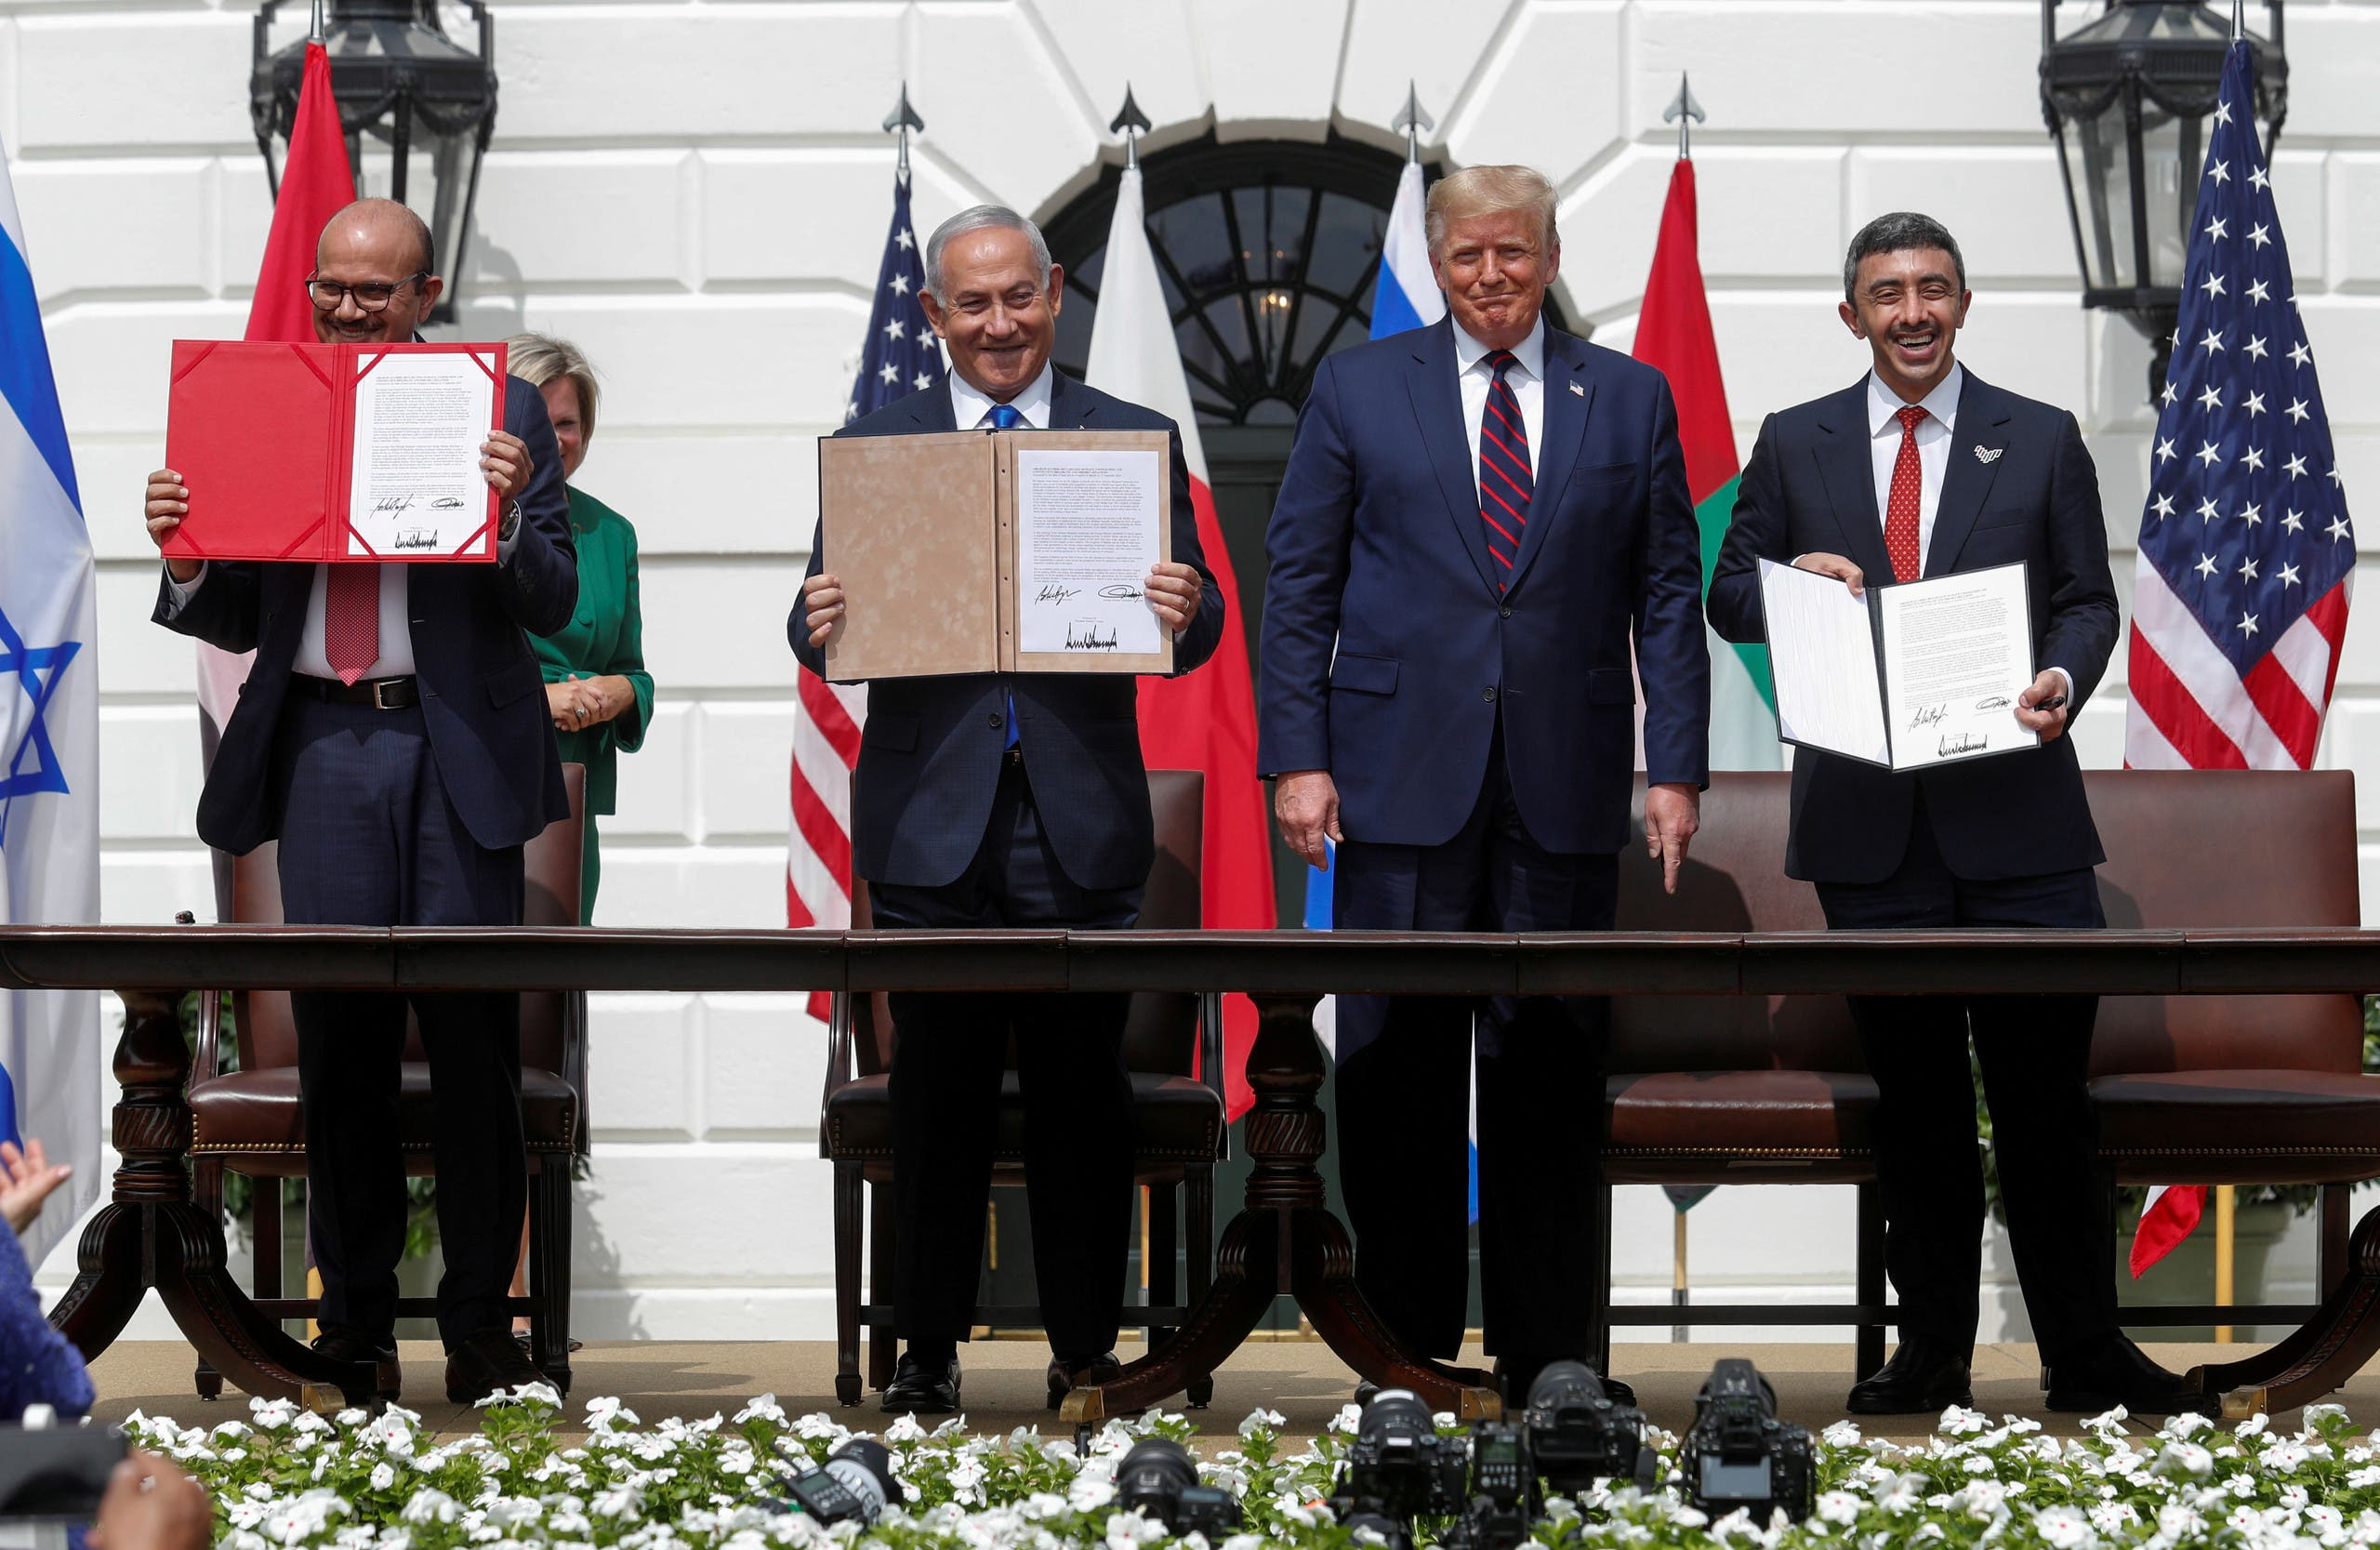 Bahrain's Foreign Minister Abdullatif Al Zayani, Israel's Prime Minister Benjamin Netanyahu and United Arab Emirates (UAE) Foreign Minister Abdullah bin Zayed display their copies of signed agreements. (Reuters)